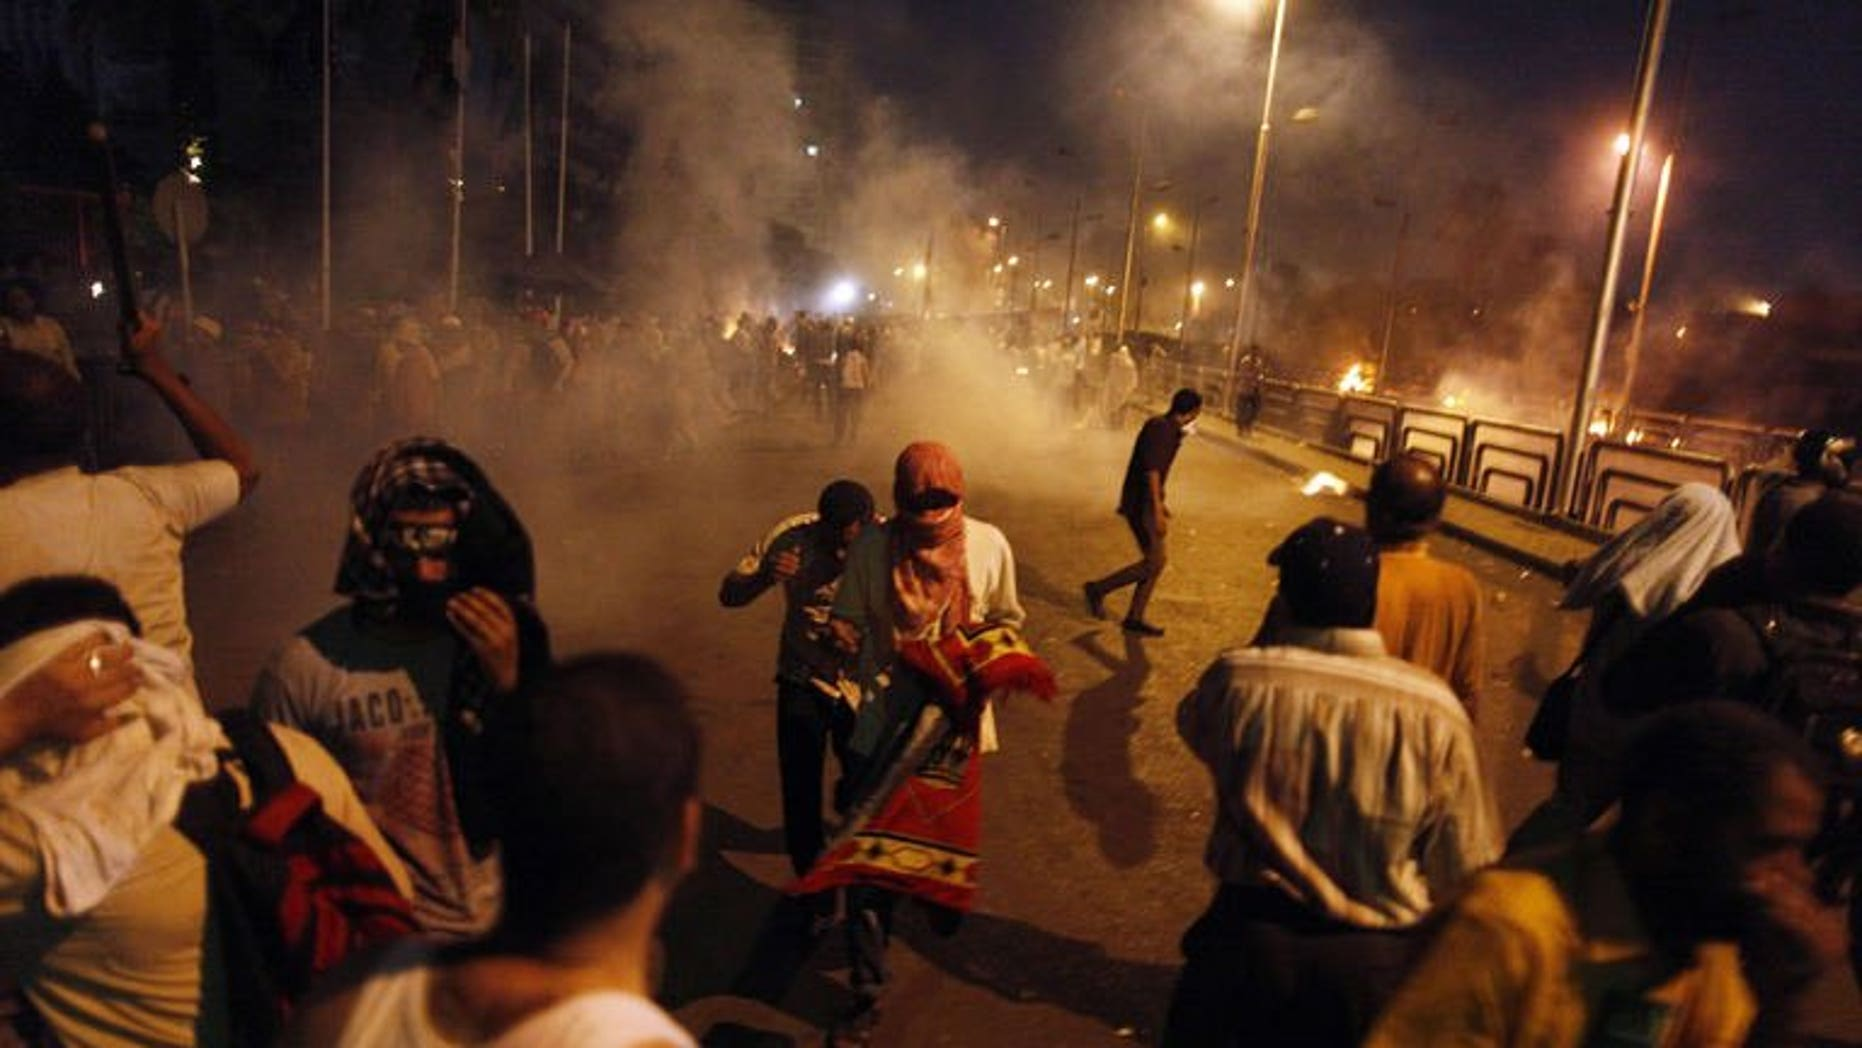 Egyptian supporters of the Muslim Brotherhood clash with police outside the elite Republican Guards base in Cairo early on July 8, 2013. The Brotherhood said on Monday that 35 supporters of ousted president Mohamed Morsi were killed at dawn when security forces opened fire on them as they were praying.